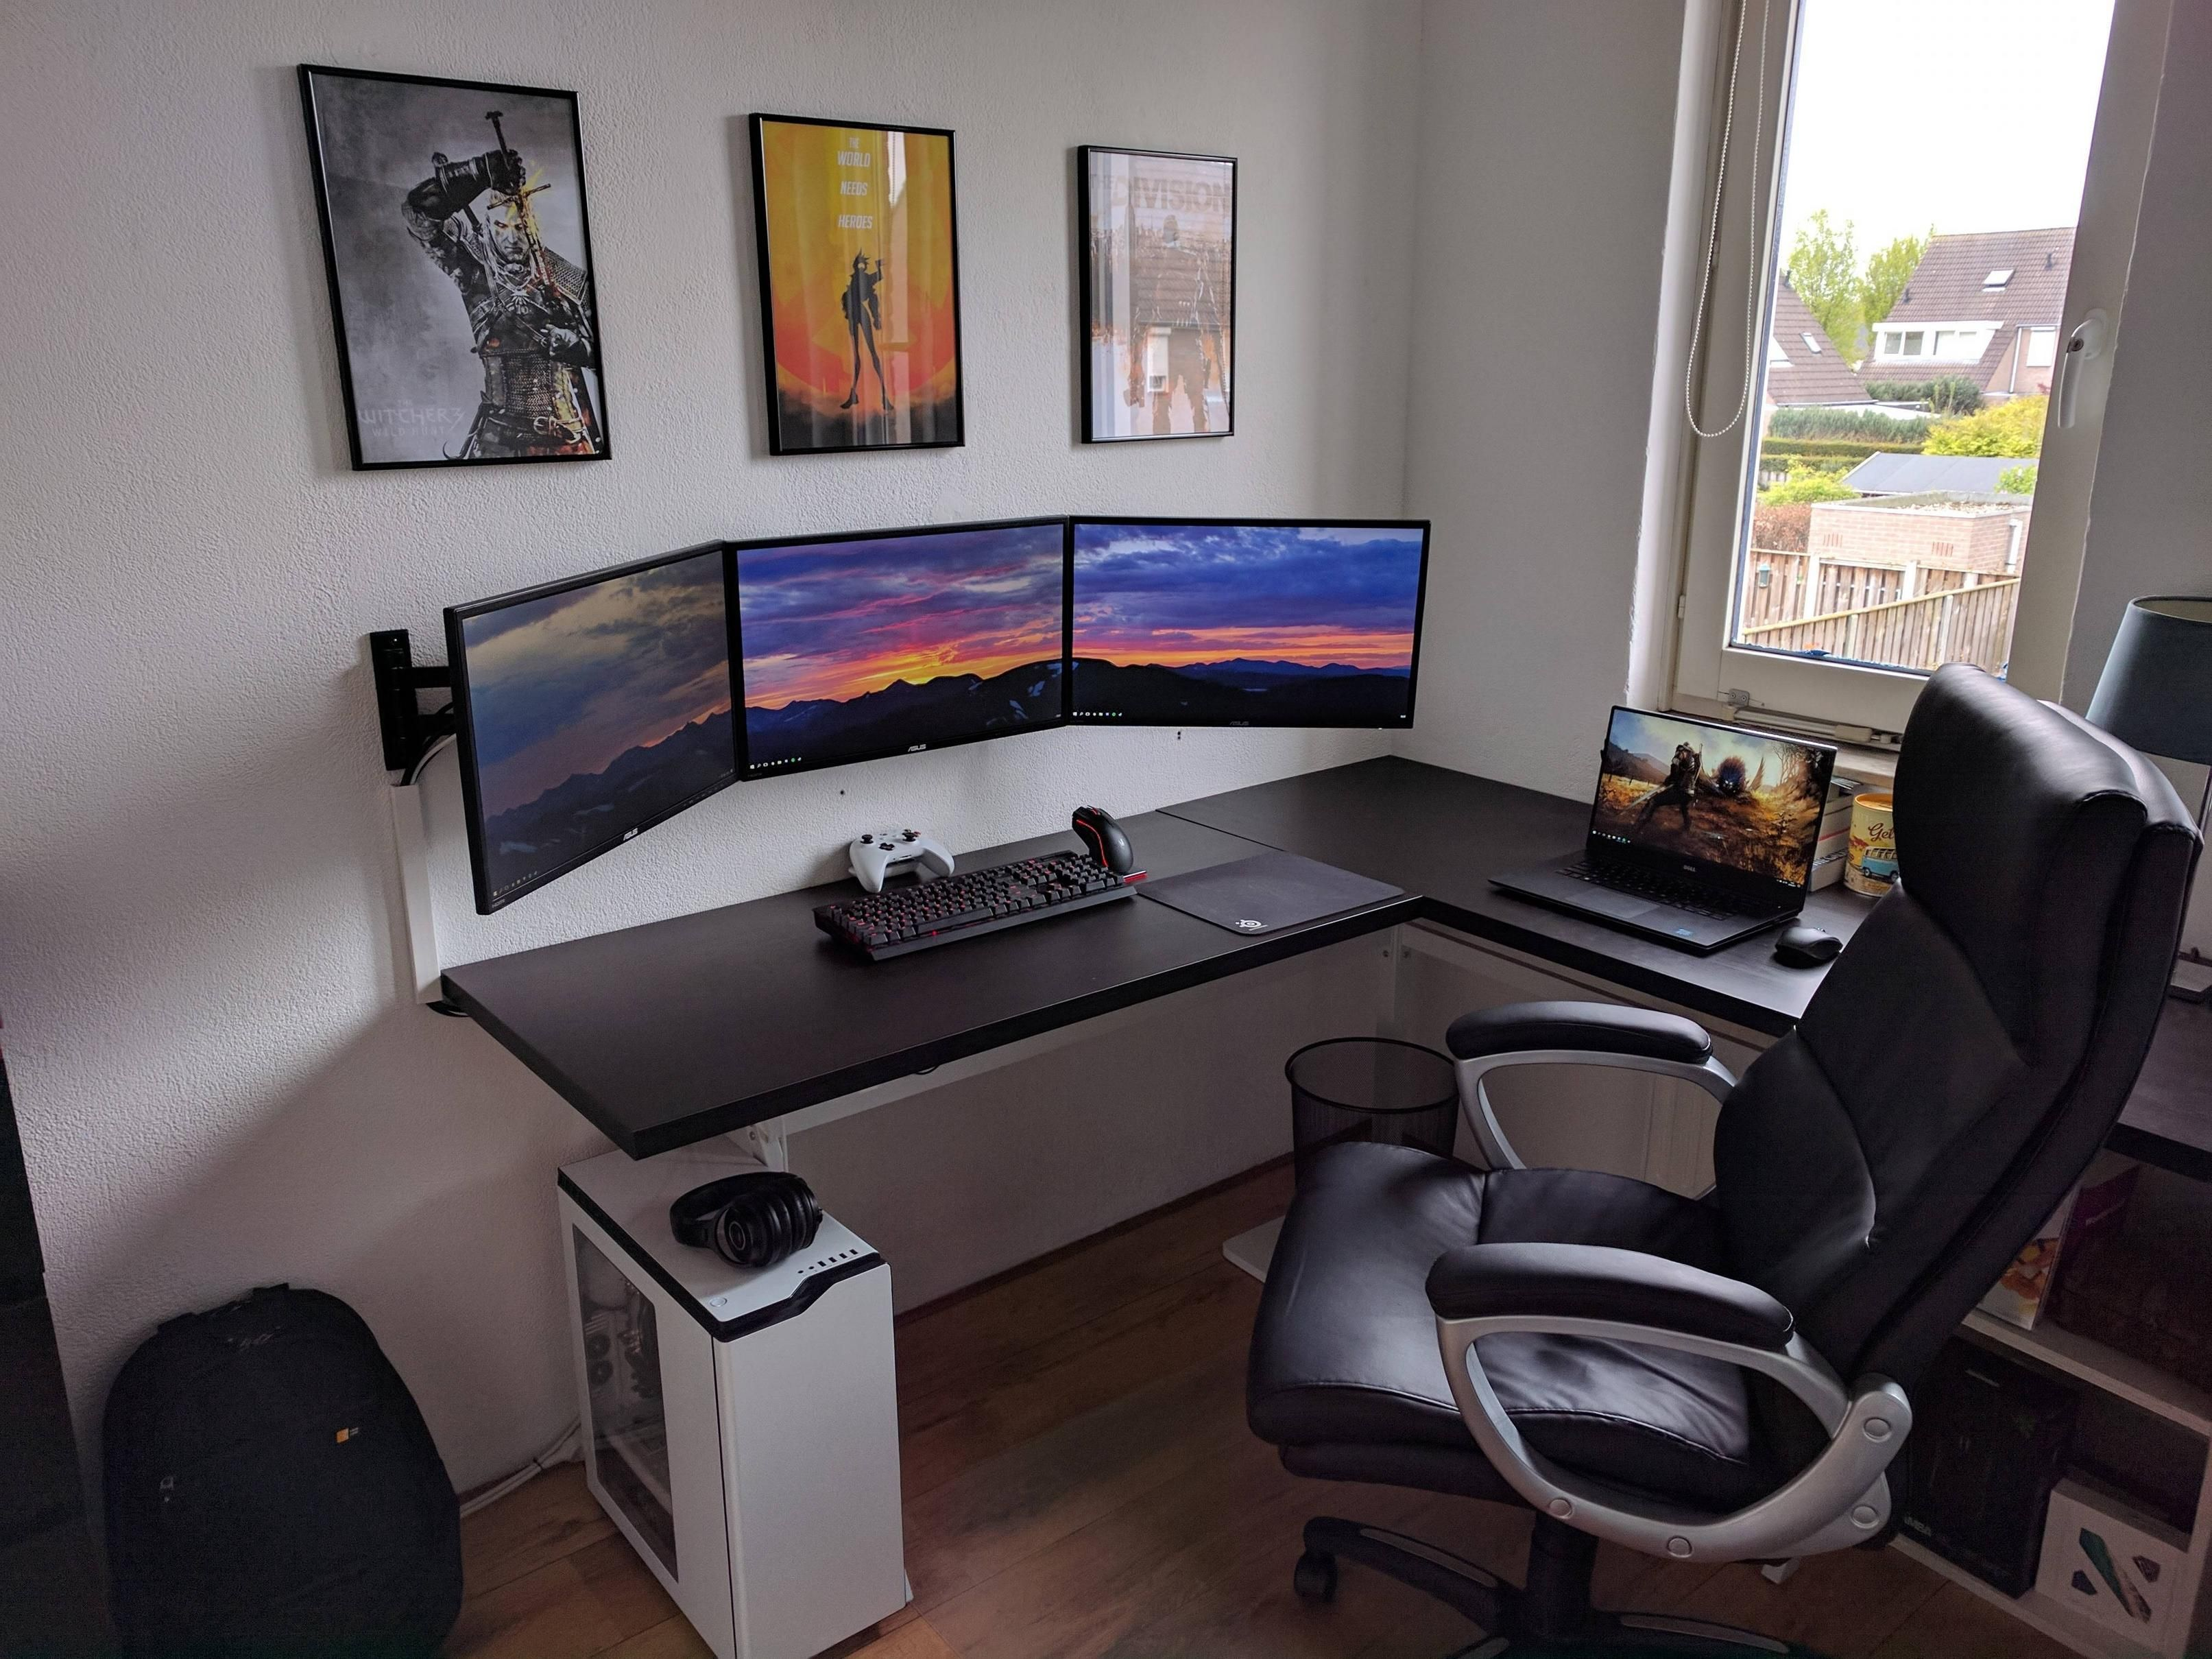 If you have a game room or recreation area in your home, it's important to have good lighting. 50+ Best Setup of Video Game Room Ideas [A Gamer's Guide ...